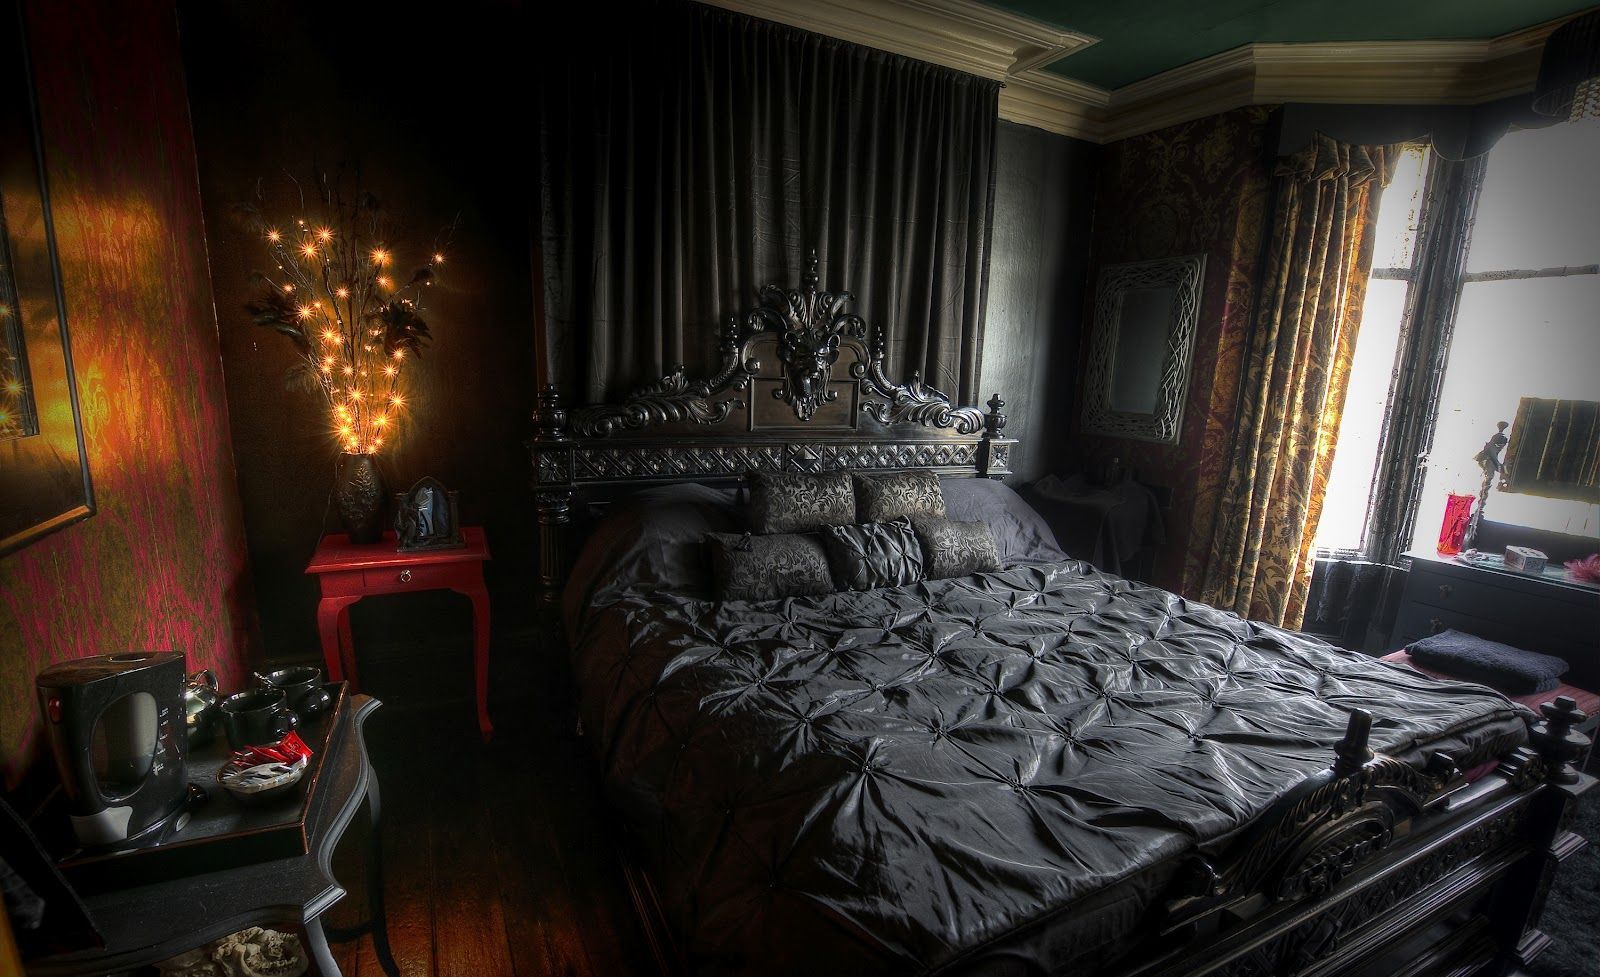 marvellous-bedroom-design-modern-dark-victorian-gothic-bedroom-interior-design